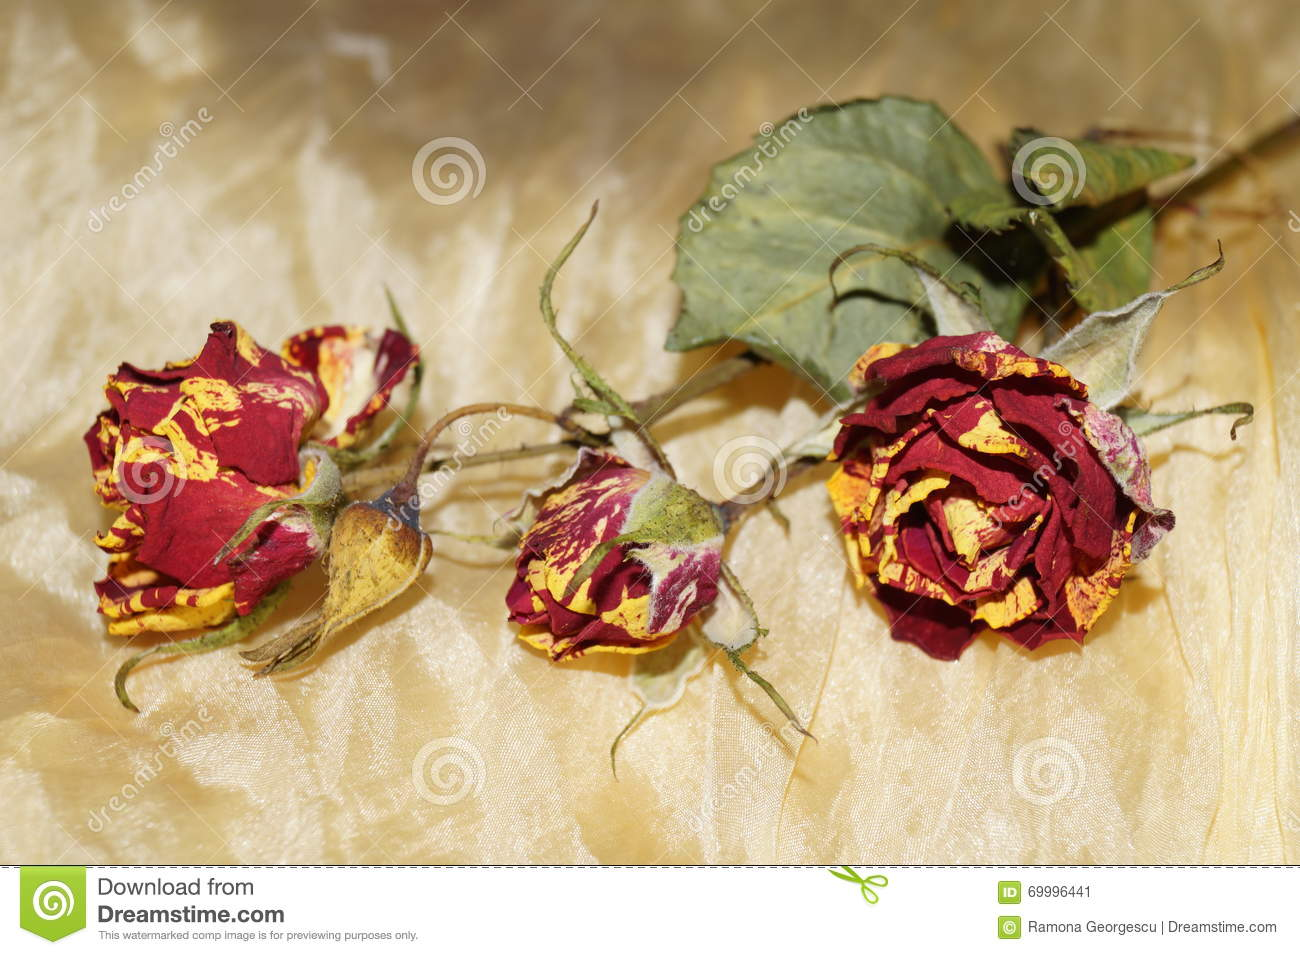 Wither roses on yellow silk stock photo image 69996441 for Natural rose colors